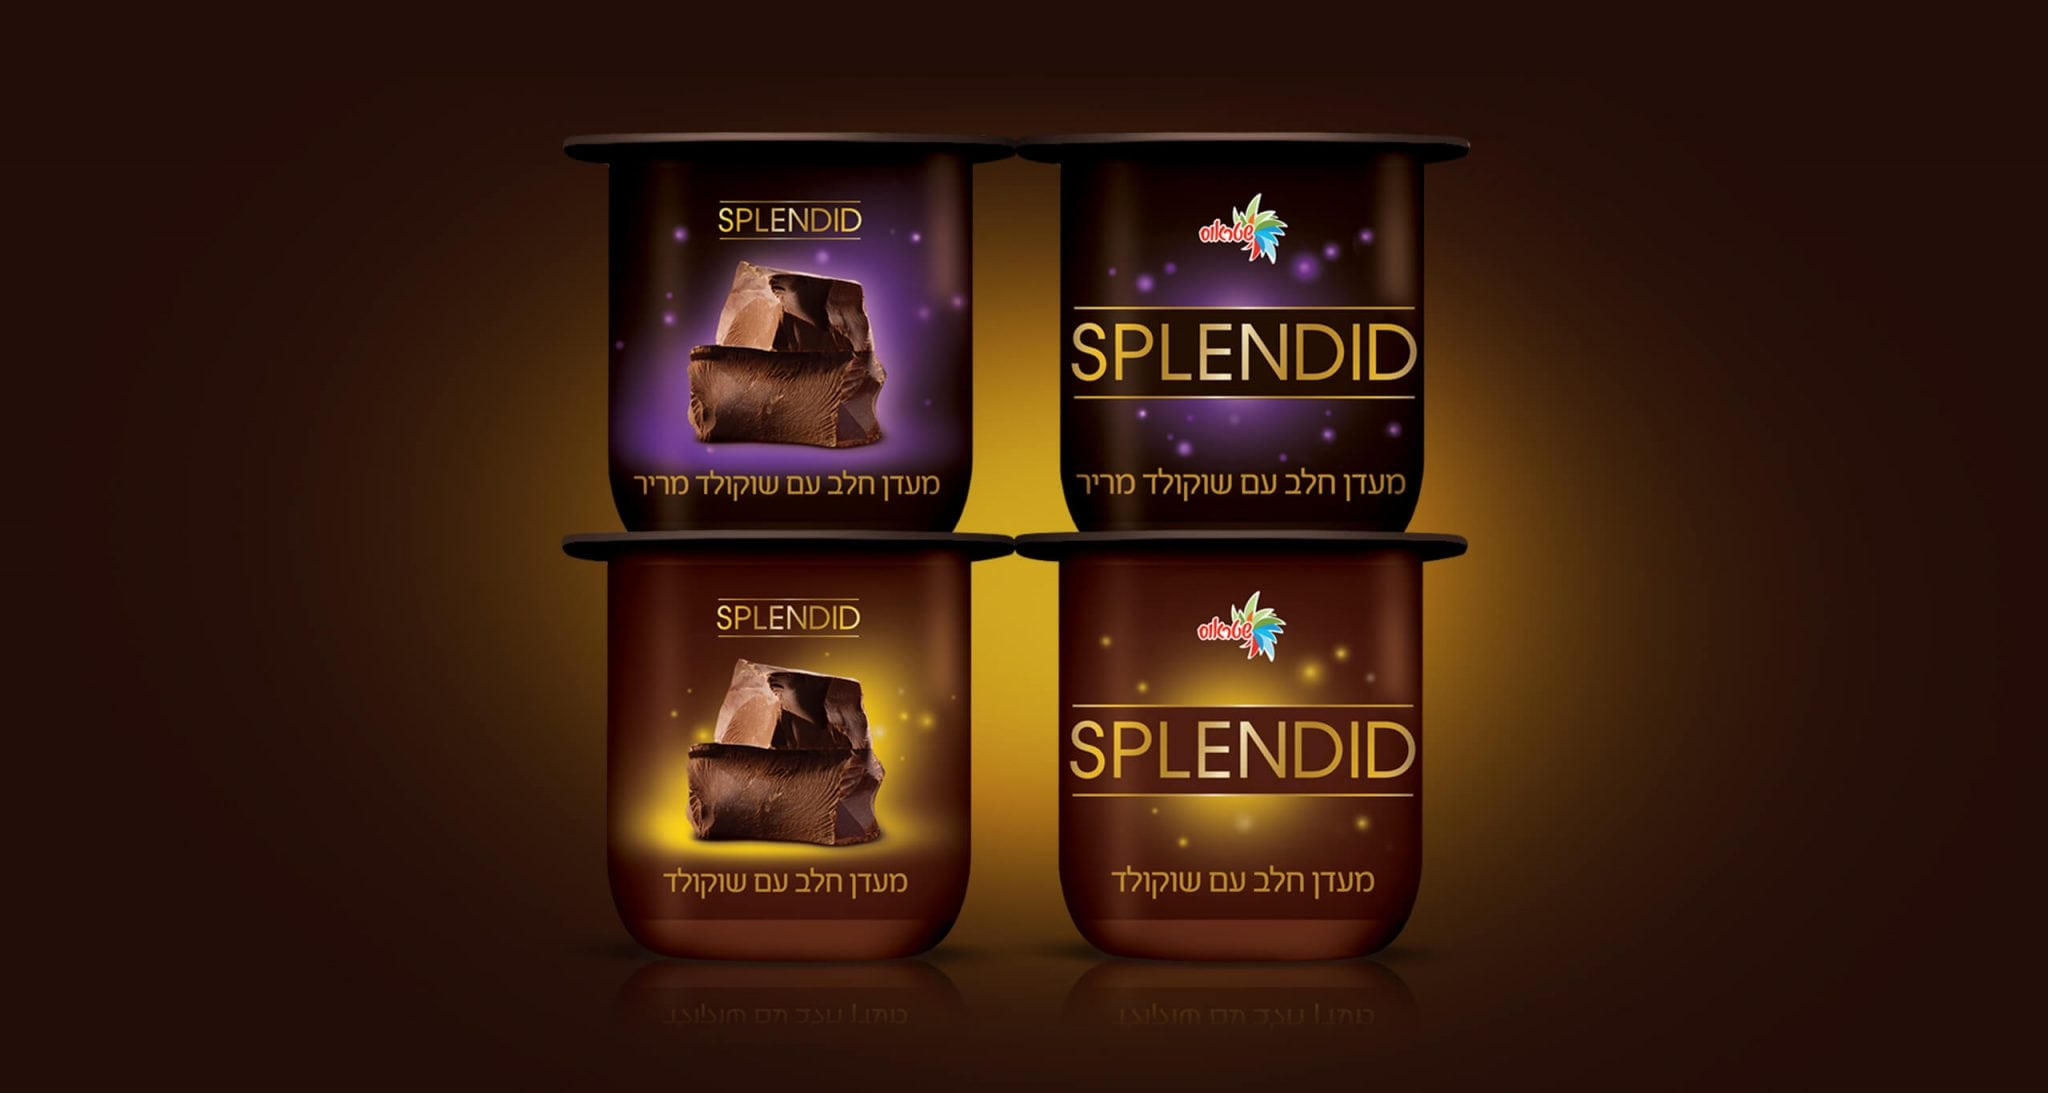 web_splendid_mousse_2560x1366_7